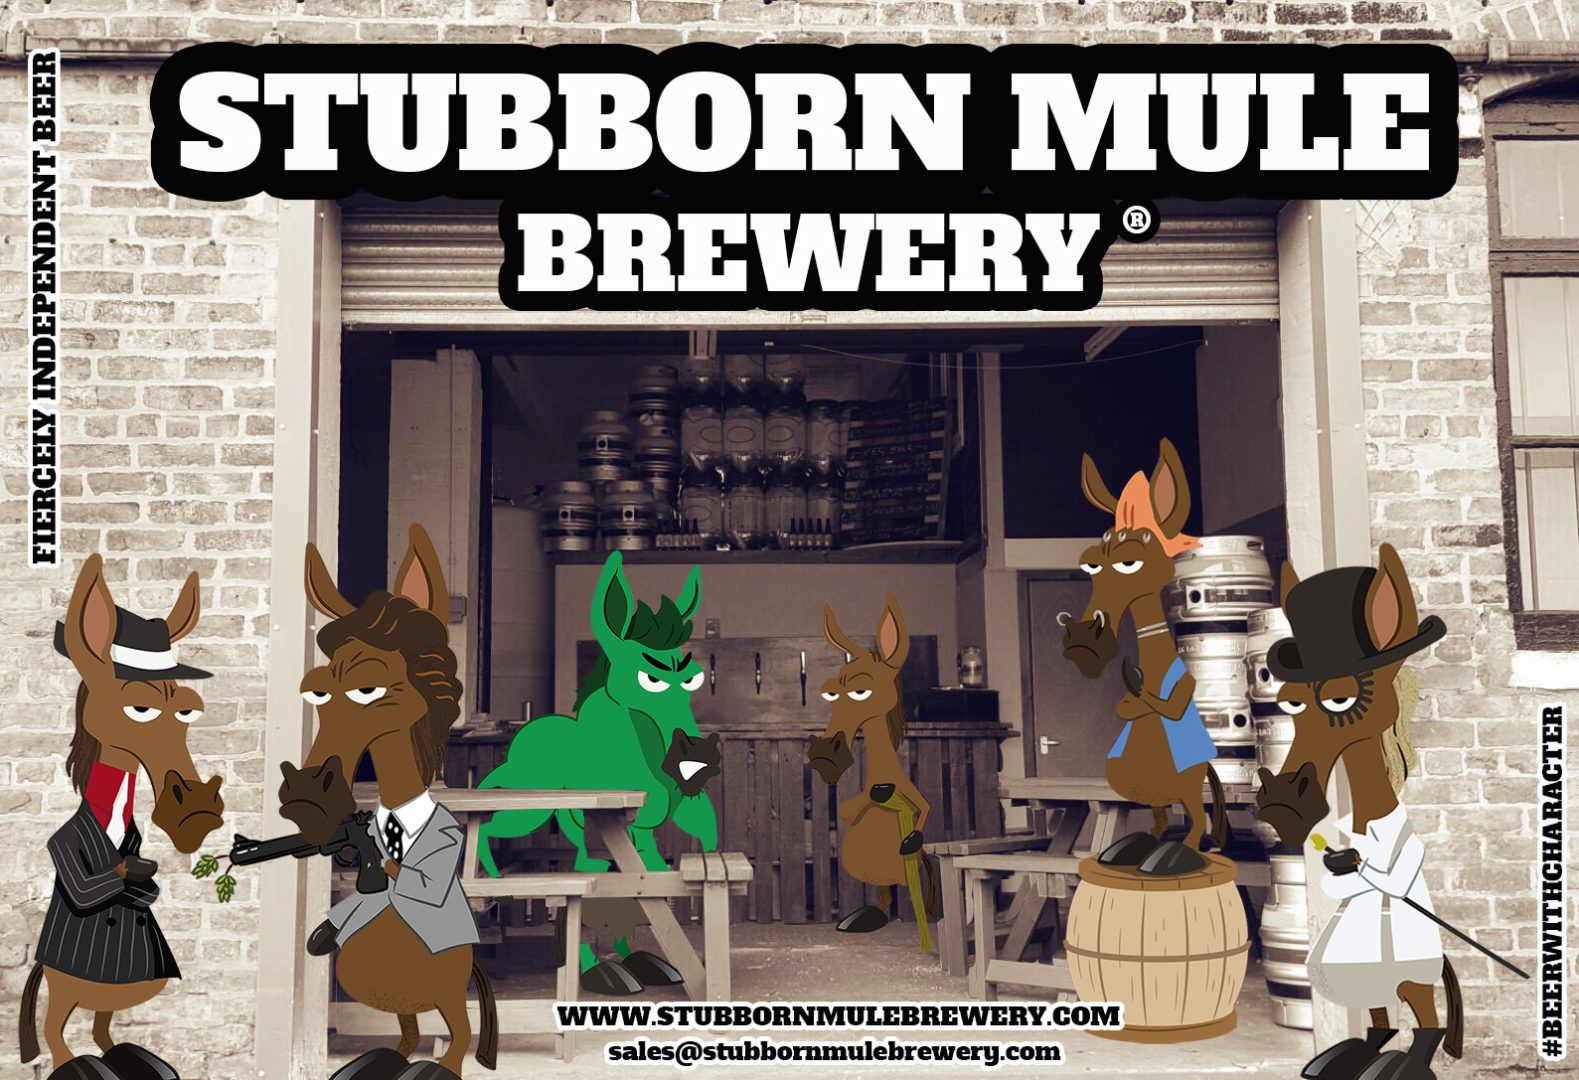 Stubborn Mule Brewery offers